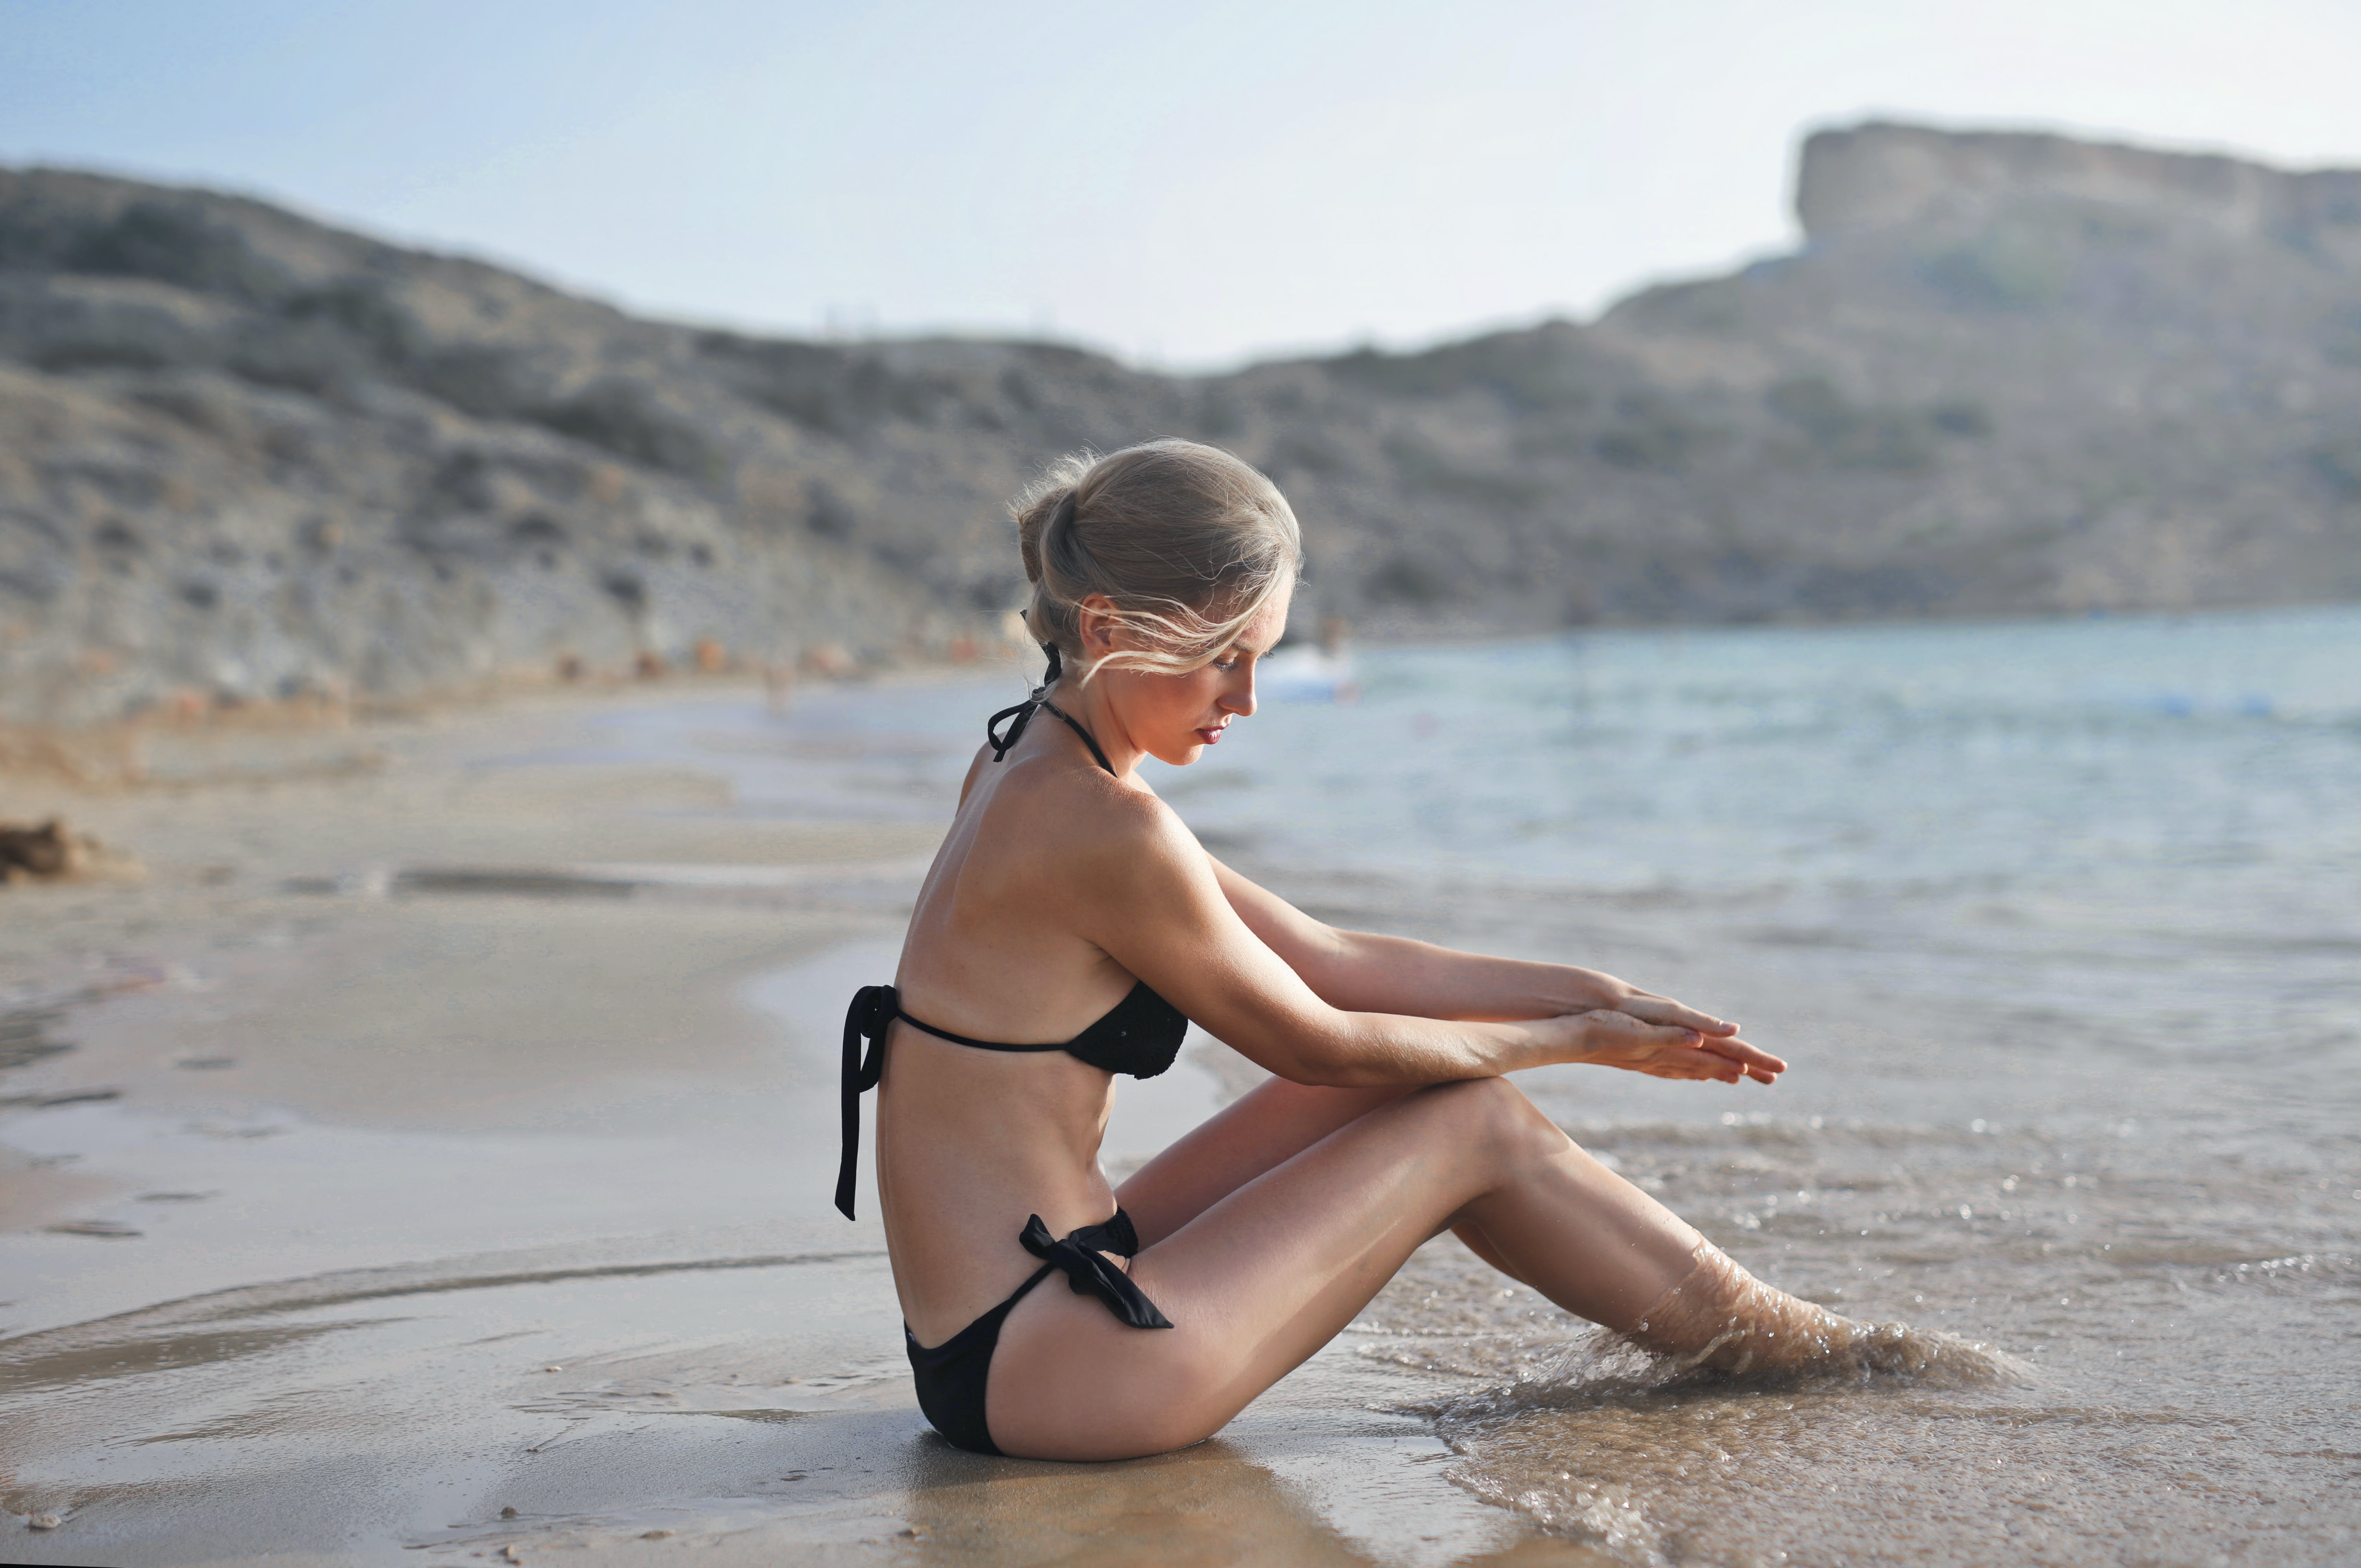 Woman in Black Bikini Sitting on Sand Near Seashore during Faytime